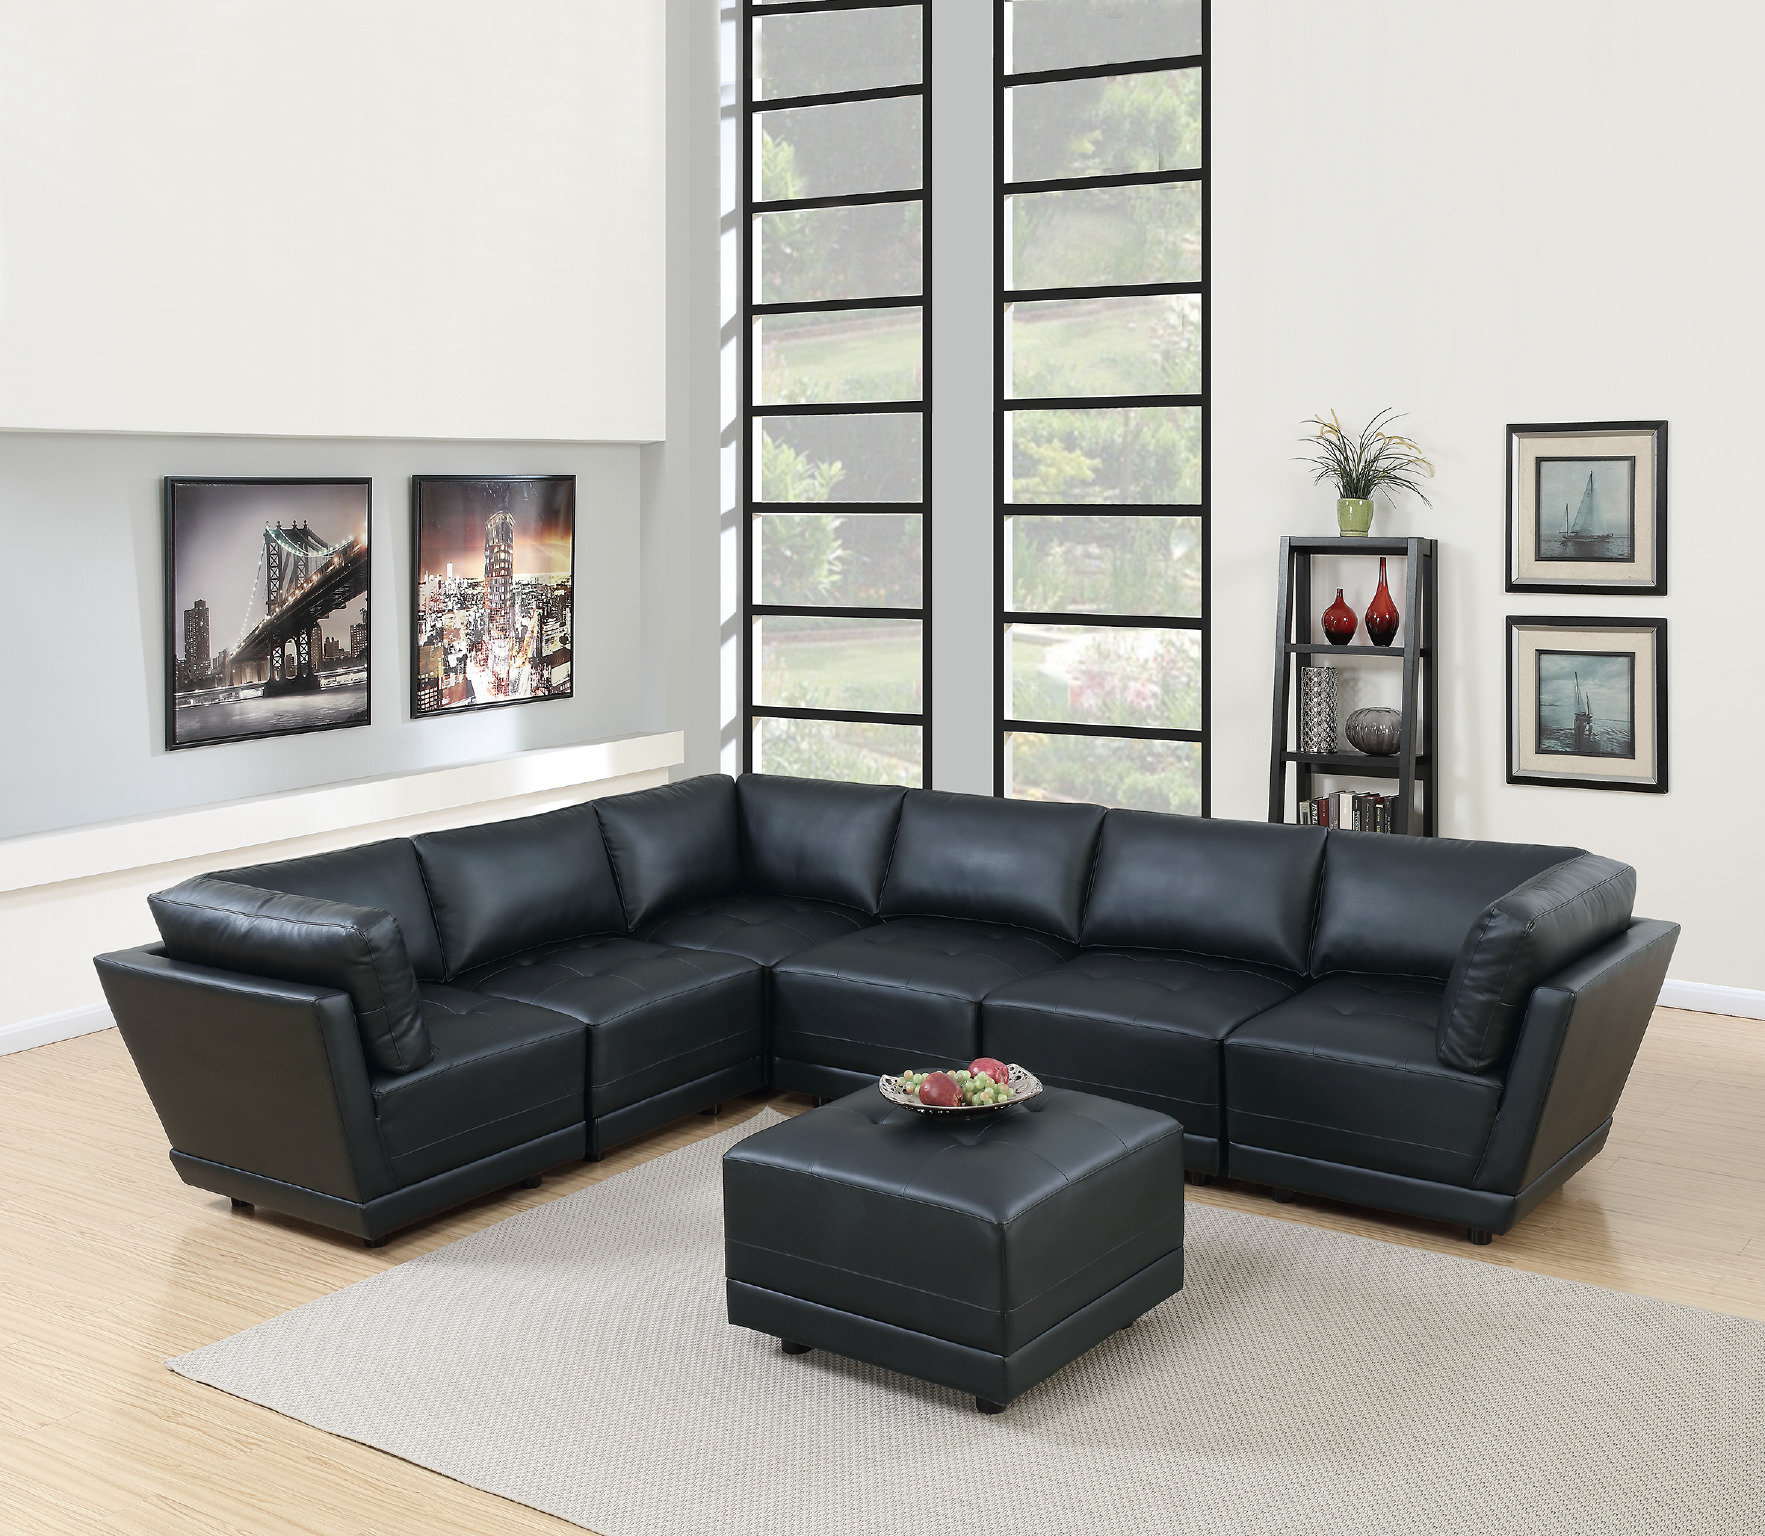 Latitude Run Kleiman 7 Piece Living Room Set Wayfair within 15 Some of the Coolest Designs of How to Craft 7 Piece Living Room Sets